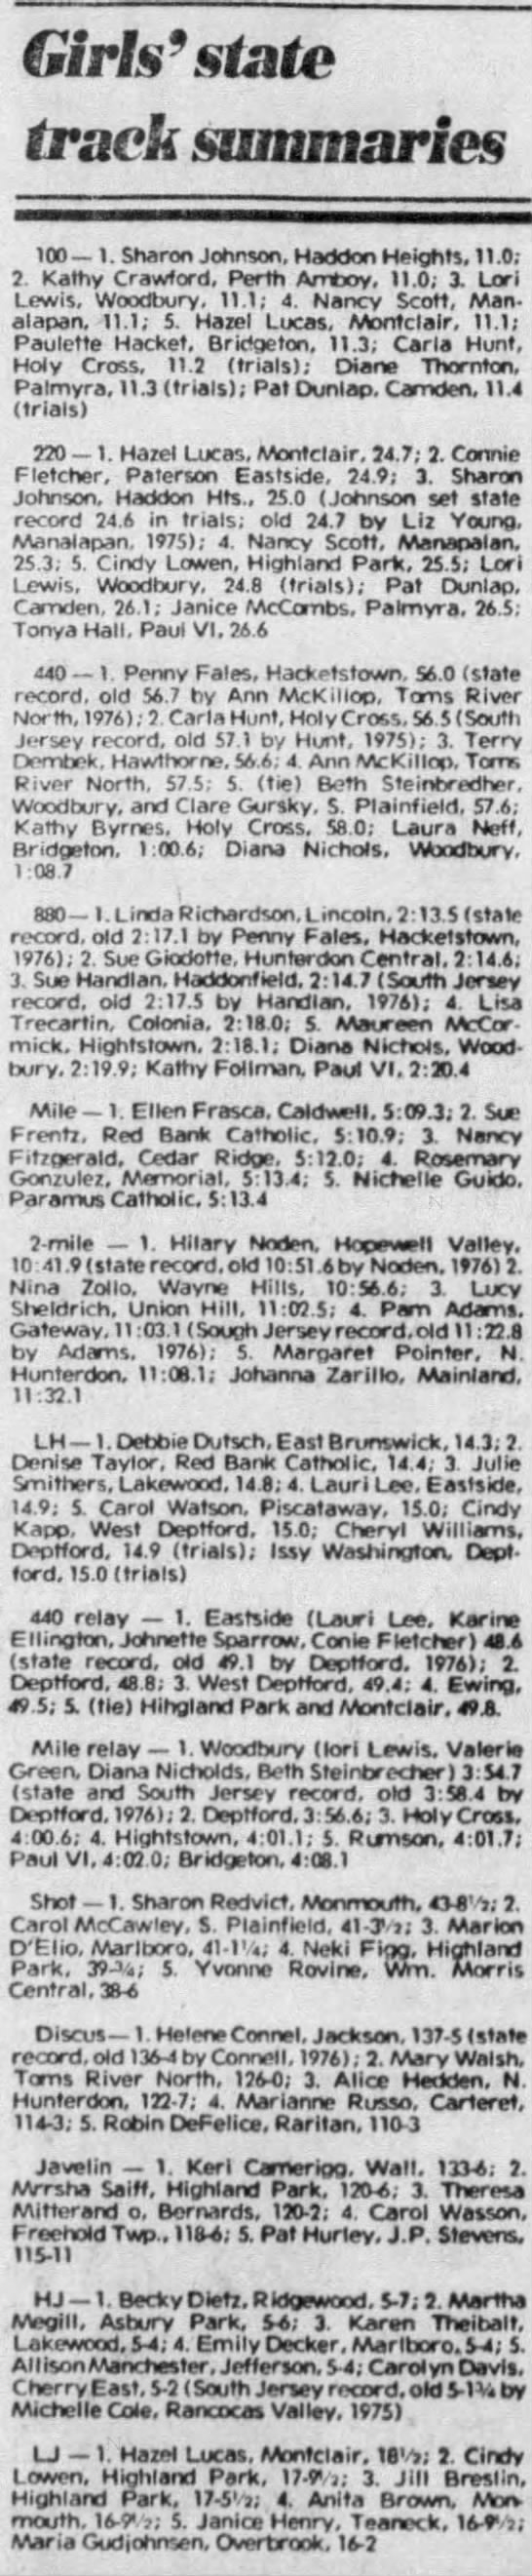 1976 Outdoor Girls All-Groups Results - Newspapers com